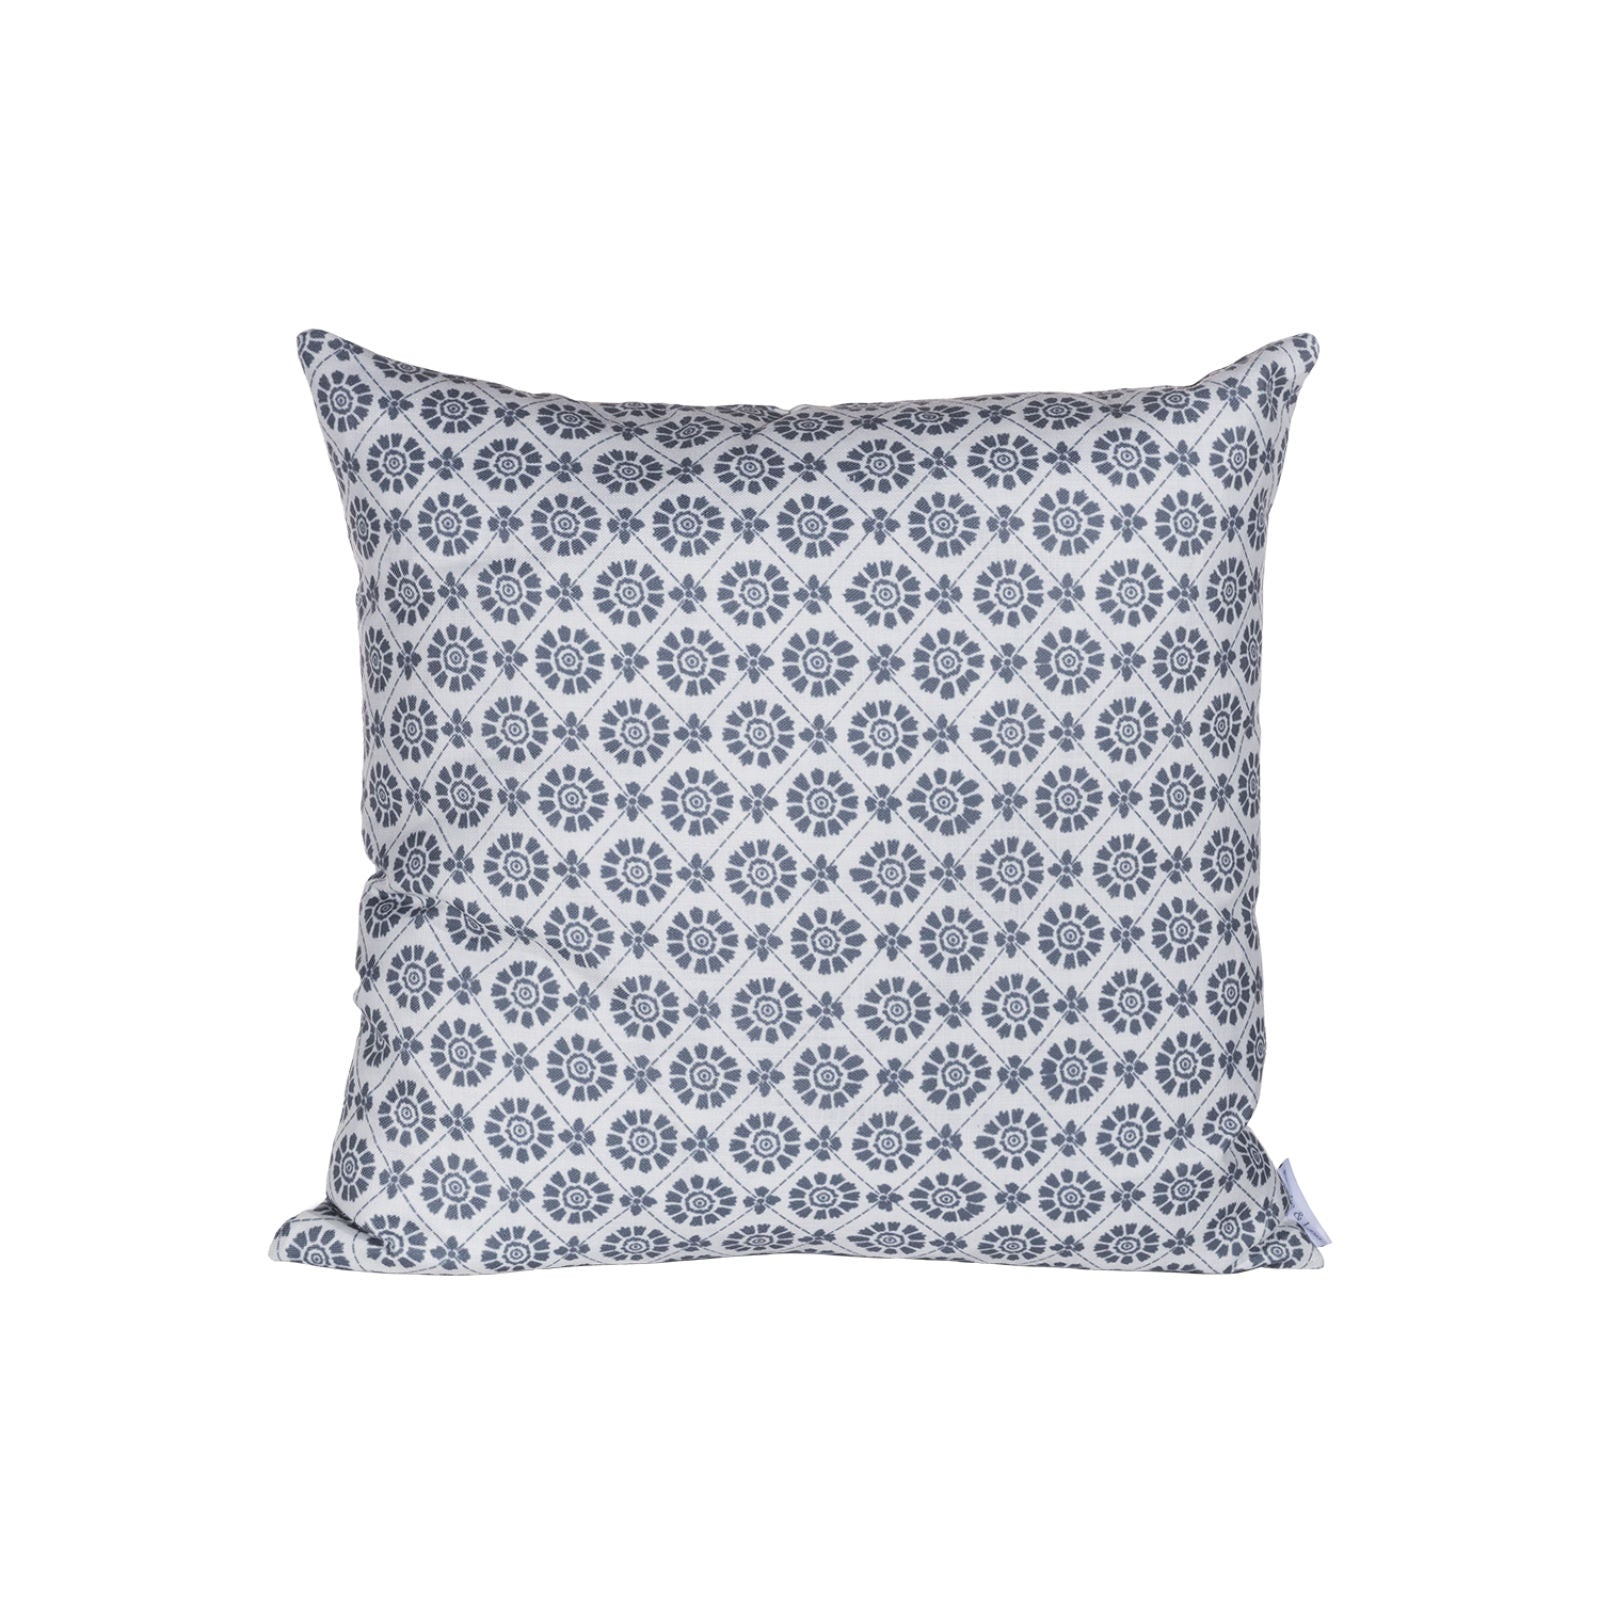 Harriet Pillow in Navy no. 1